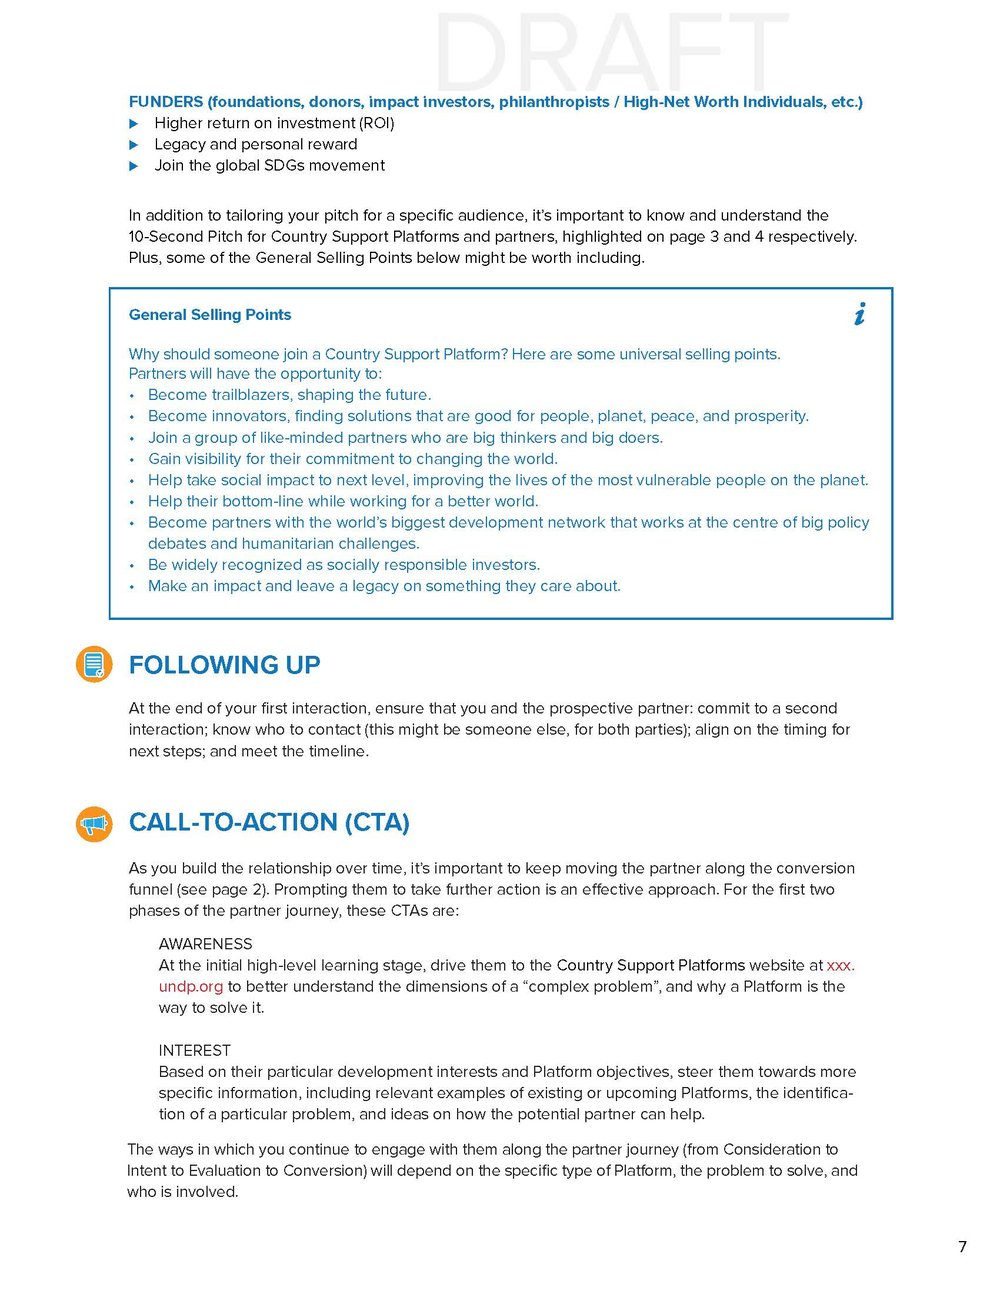 Country-Support-Platform-Marketing-Guide_Page_09.jpg